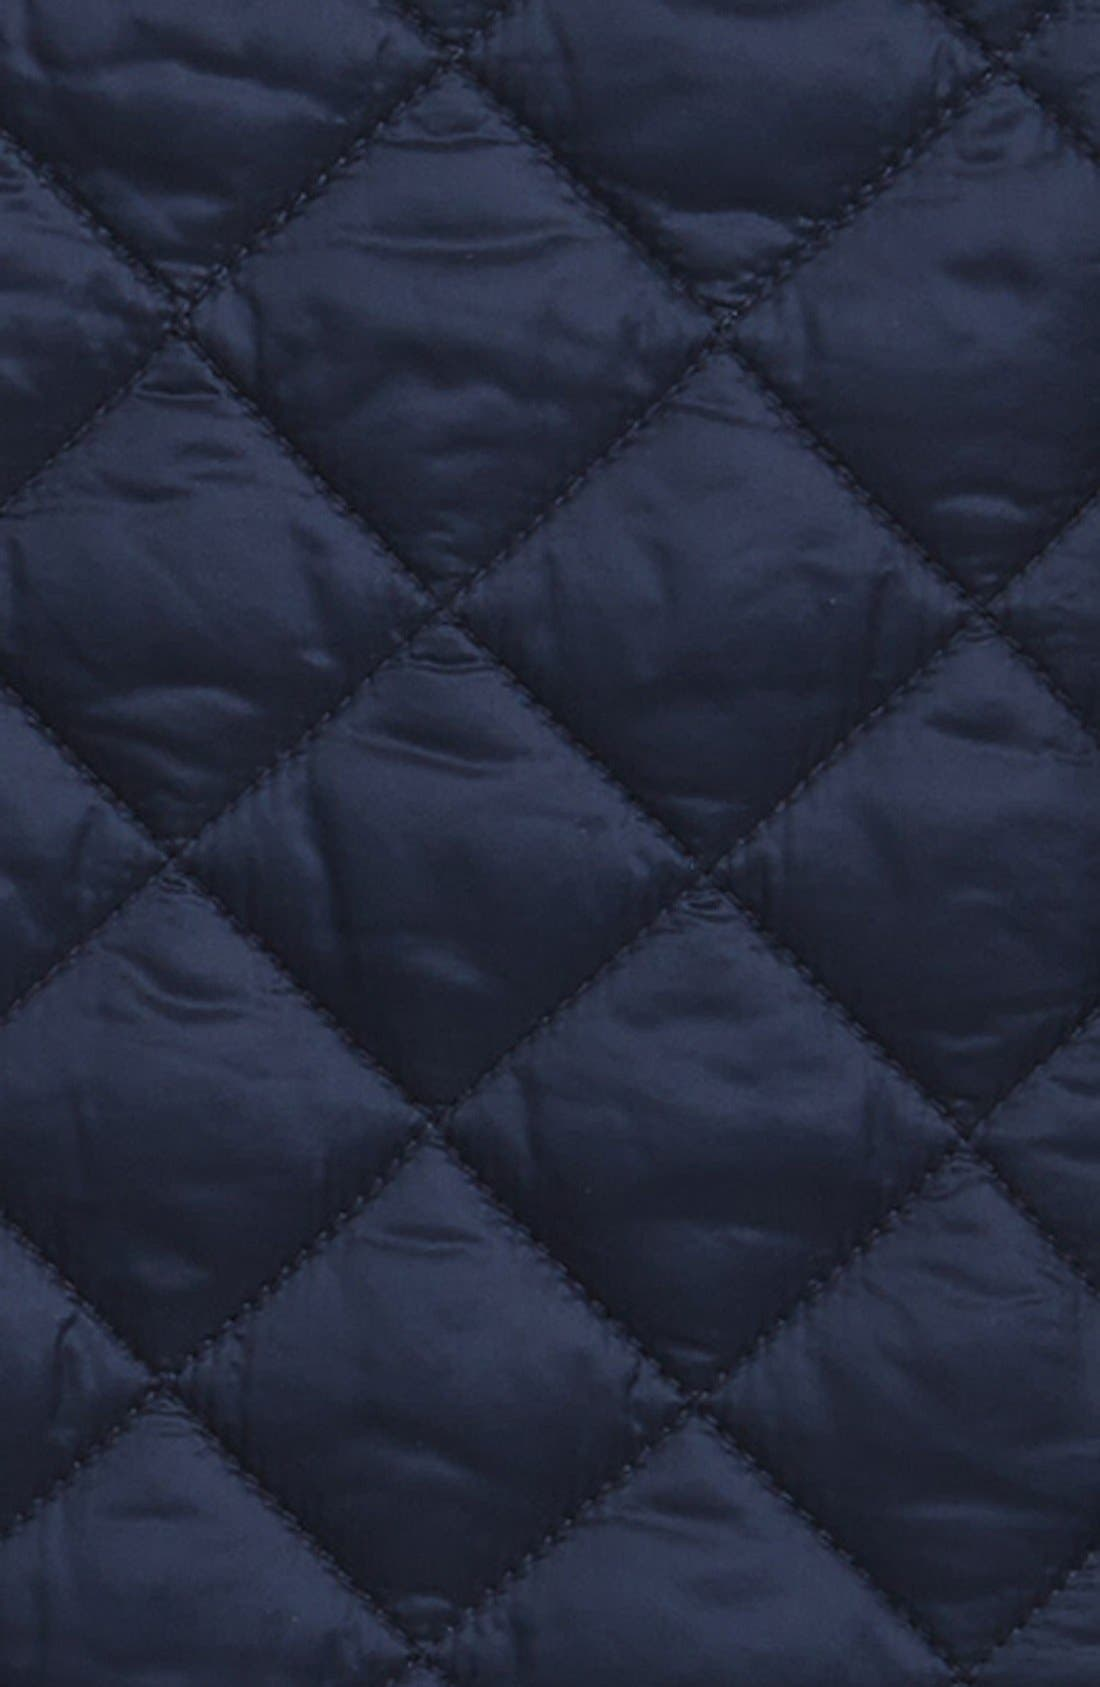 BURBERRY, 'Tiggsmoore' Diamond Quilted Jacket, Alternate thumbnail 3, color, 409